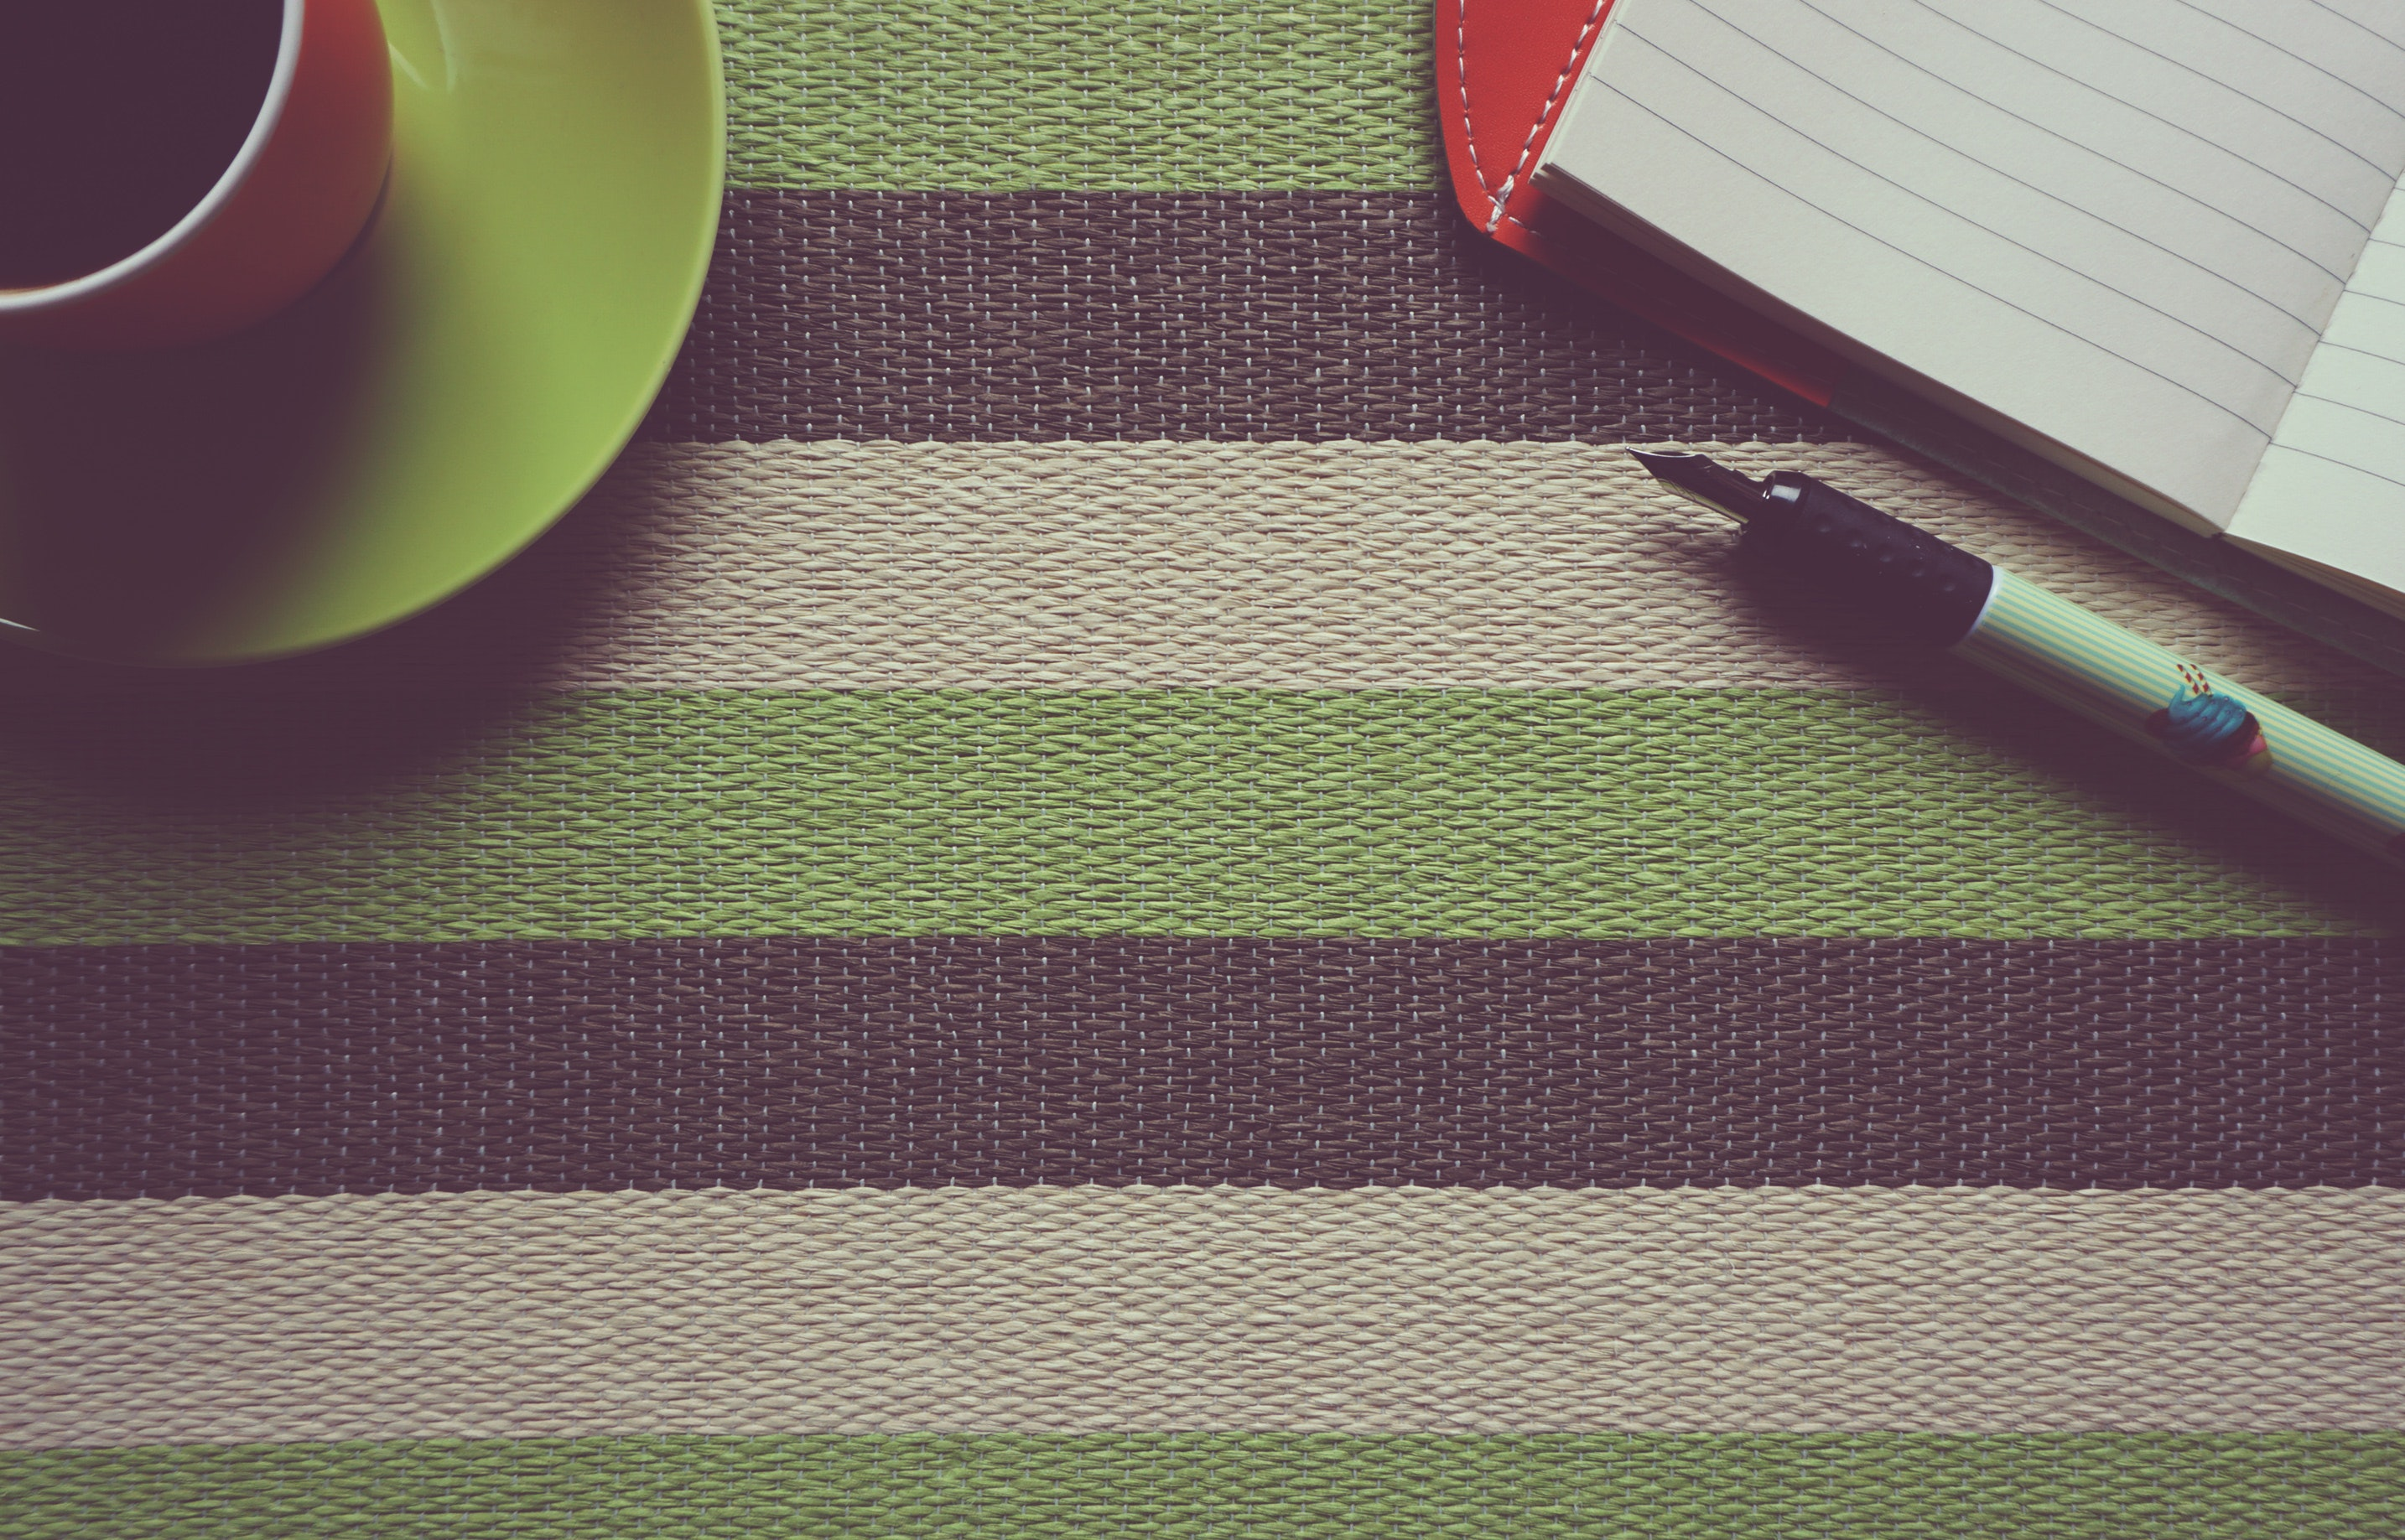 Black Pen on Gray Black and Green Striped Textile, Coffee, Pattern, Work, Texture, HQ Photo